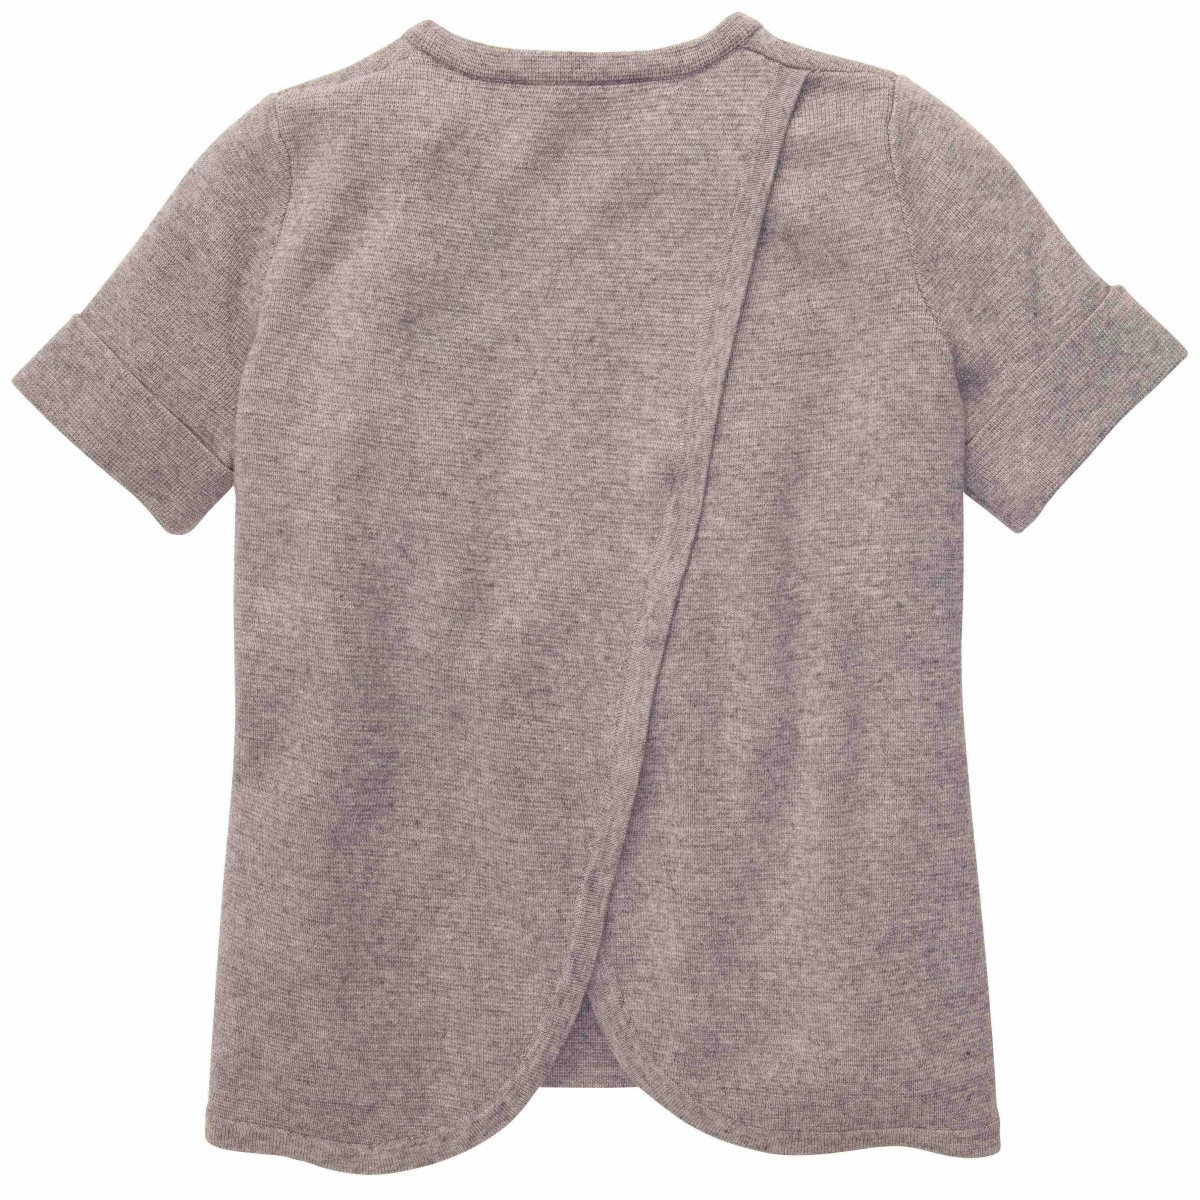 Beau Sweater: Grey